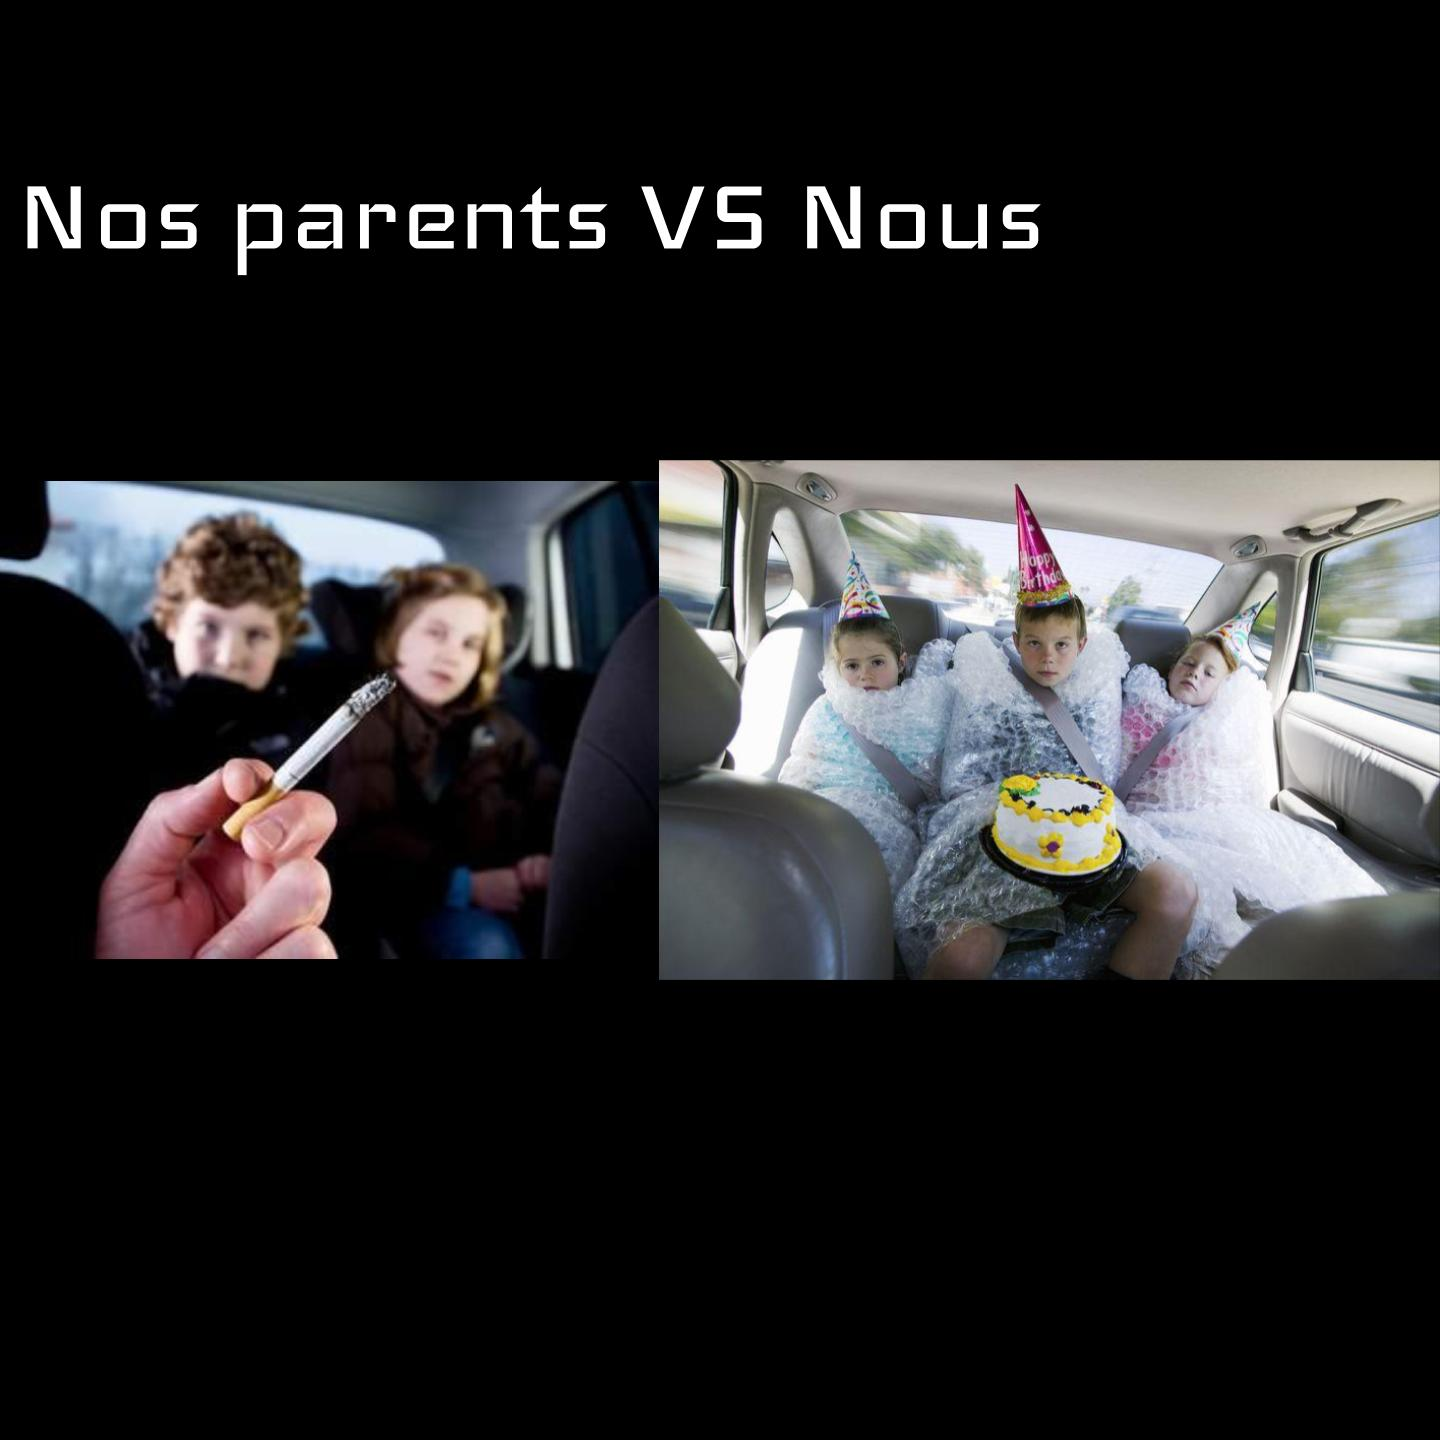 Épisode 106 - Nos parents VS Nous